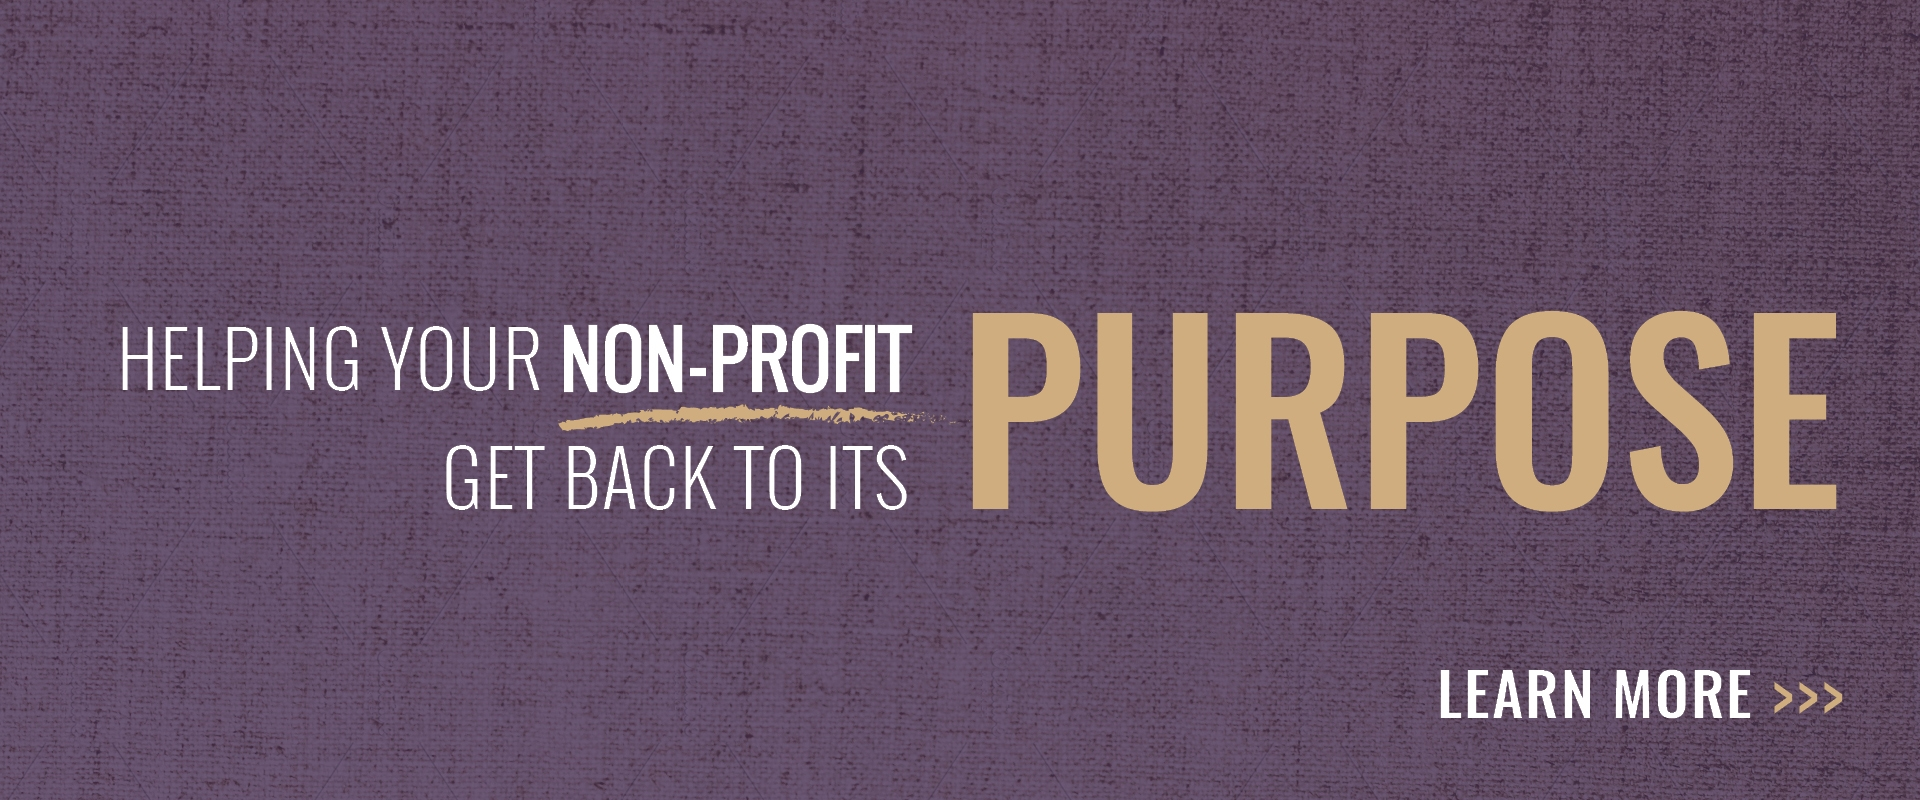 Helping your nonprofit get back to its purpose Banner